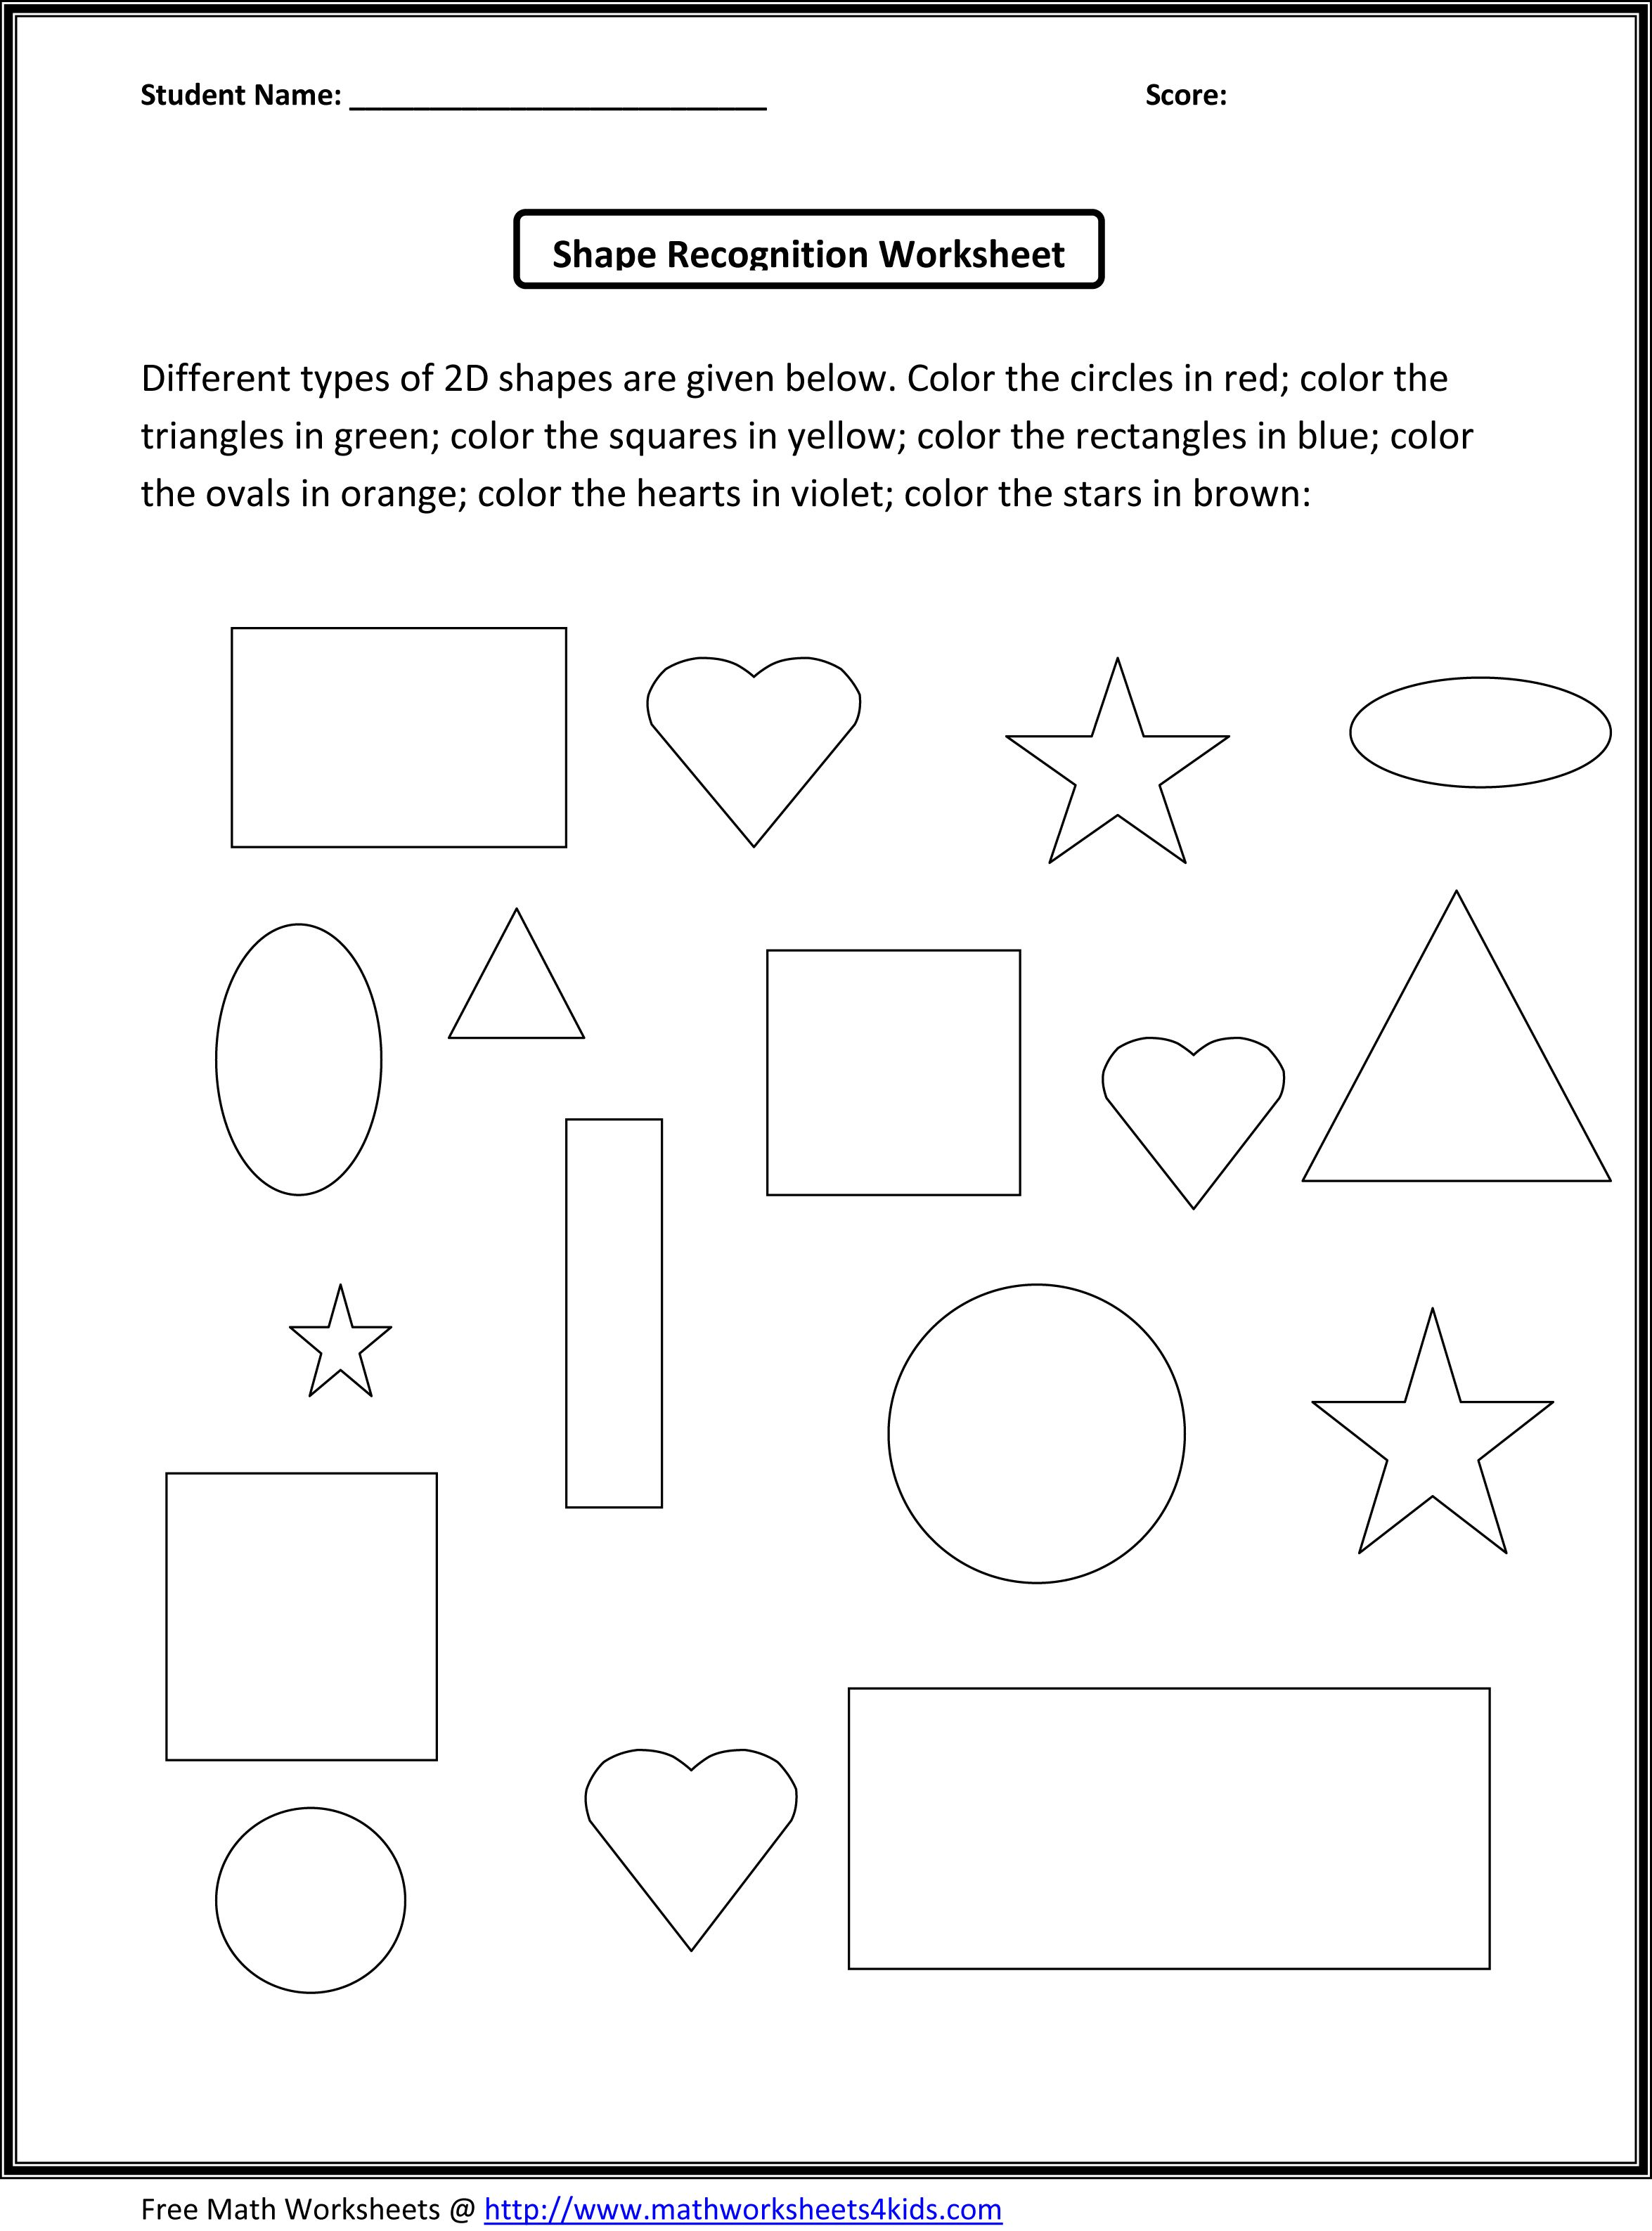 spanish worksheets for kindergarten – Worksheets for Kids Math